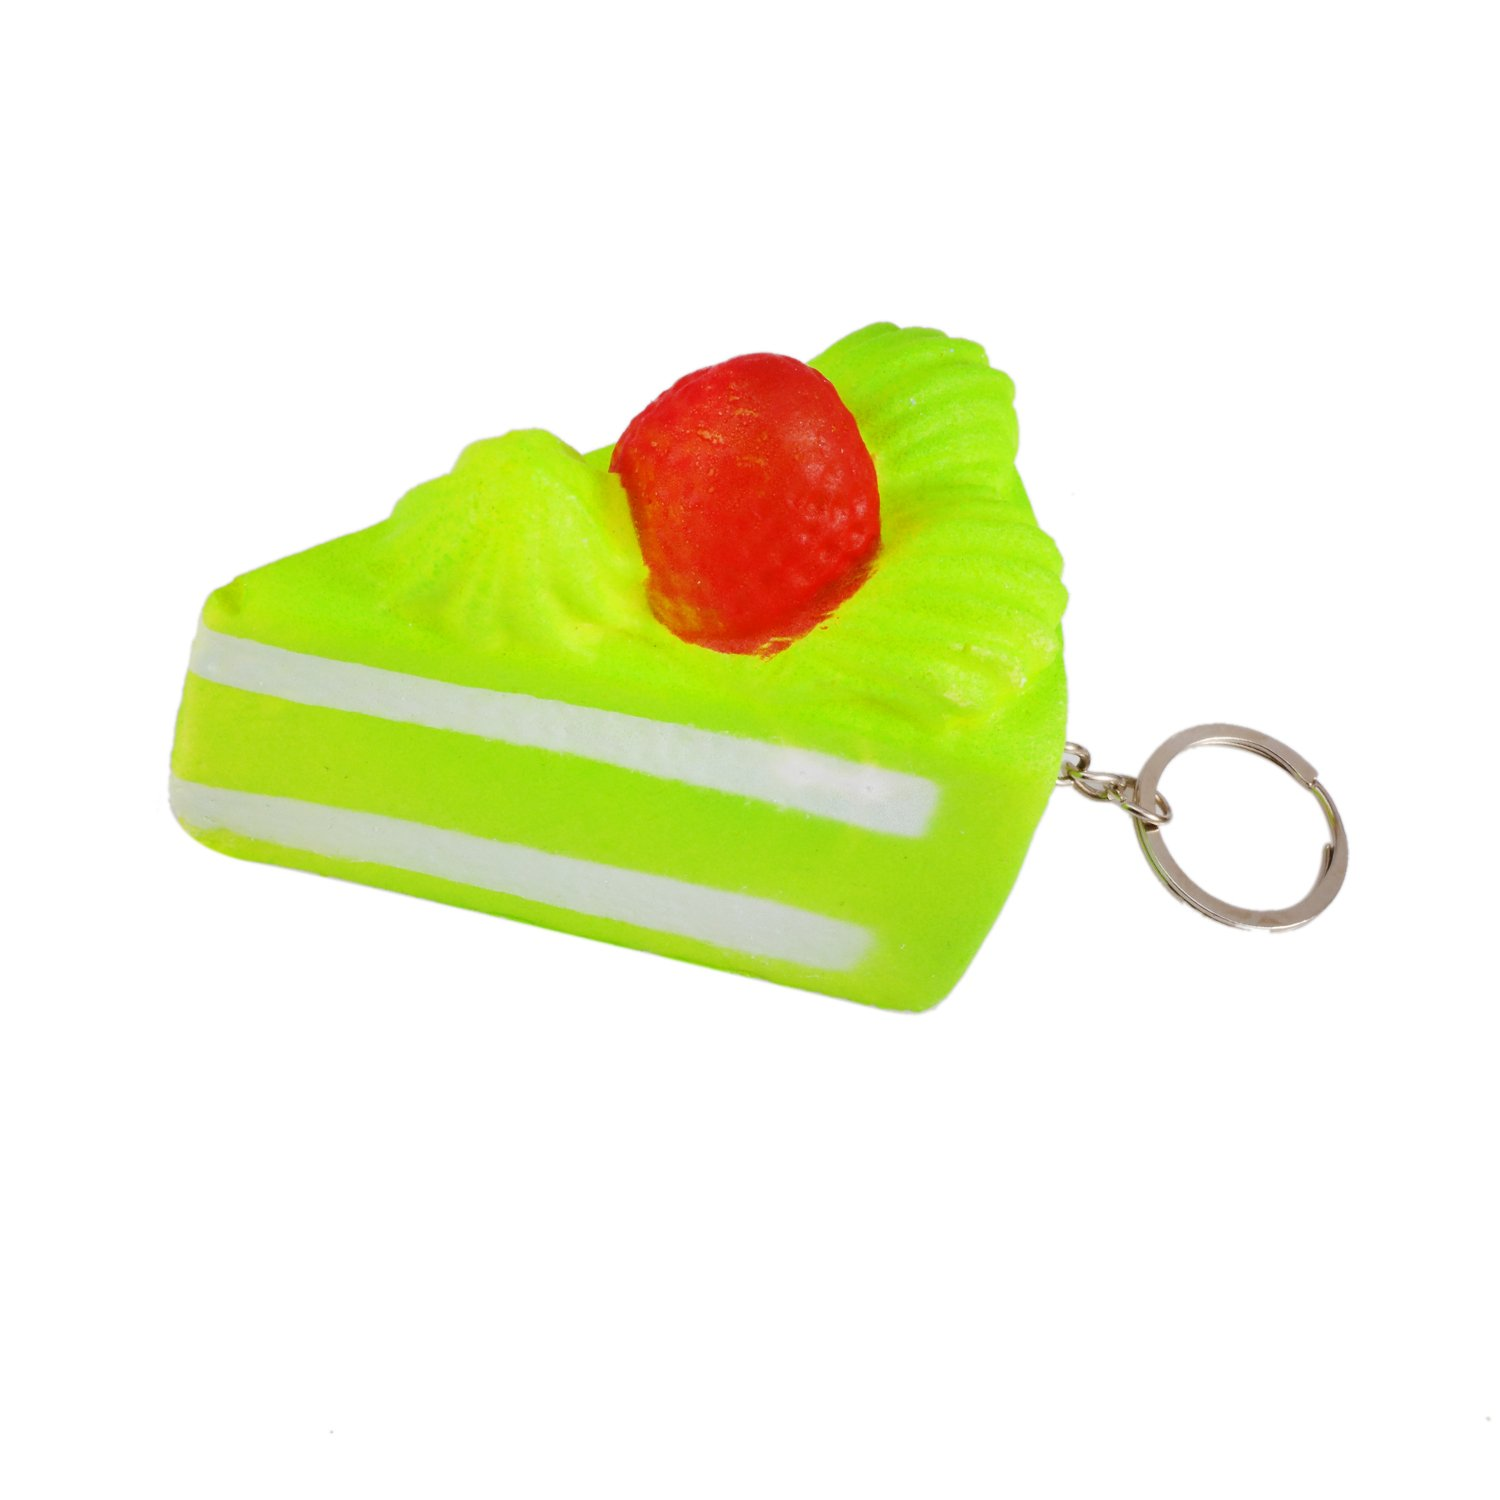 Squishy Cake Slice : Galleon - Vipe Slow Rising Squishy Slice Triangle Cake Squishy Toy Cream Scented Slow Rising ...